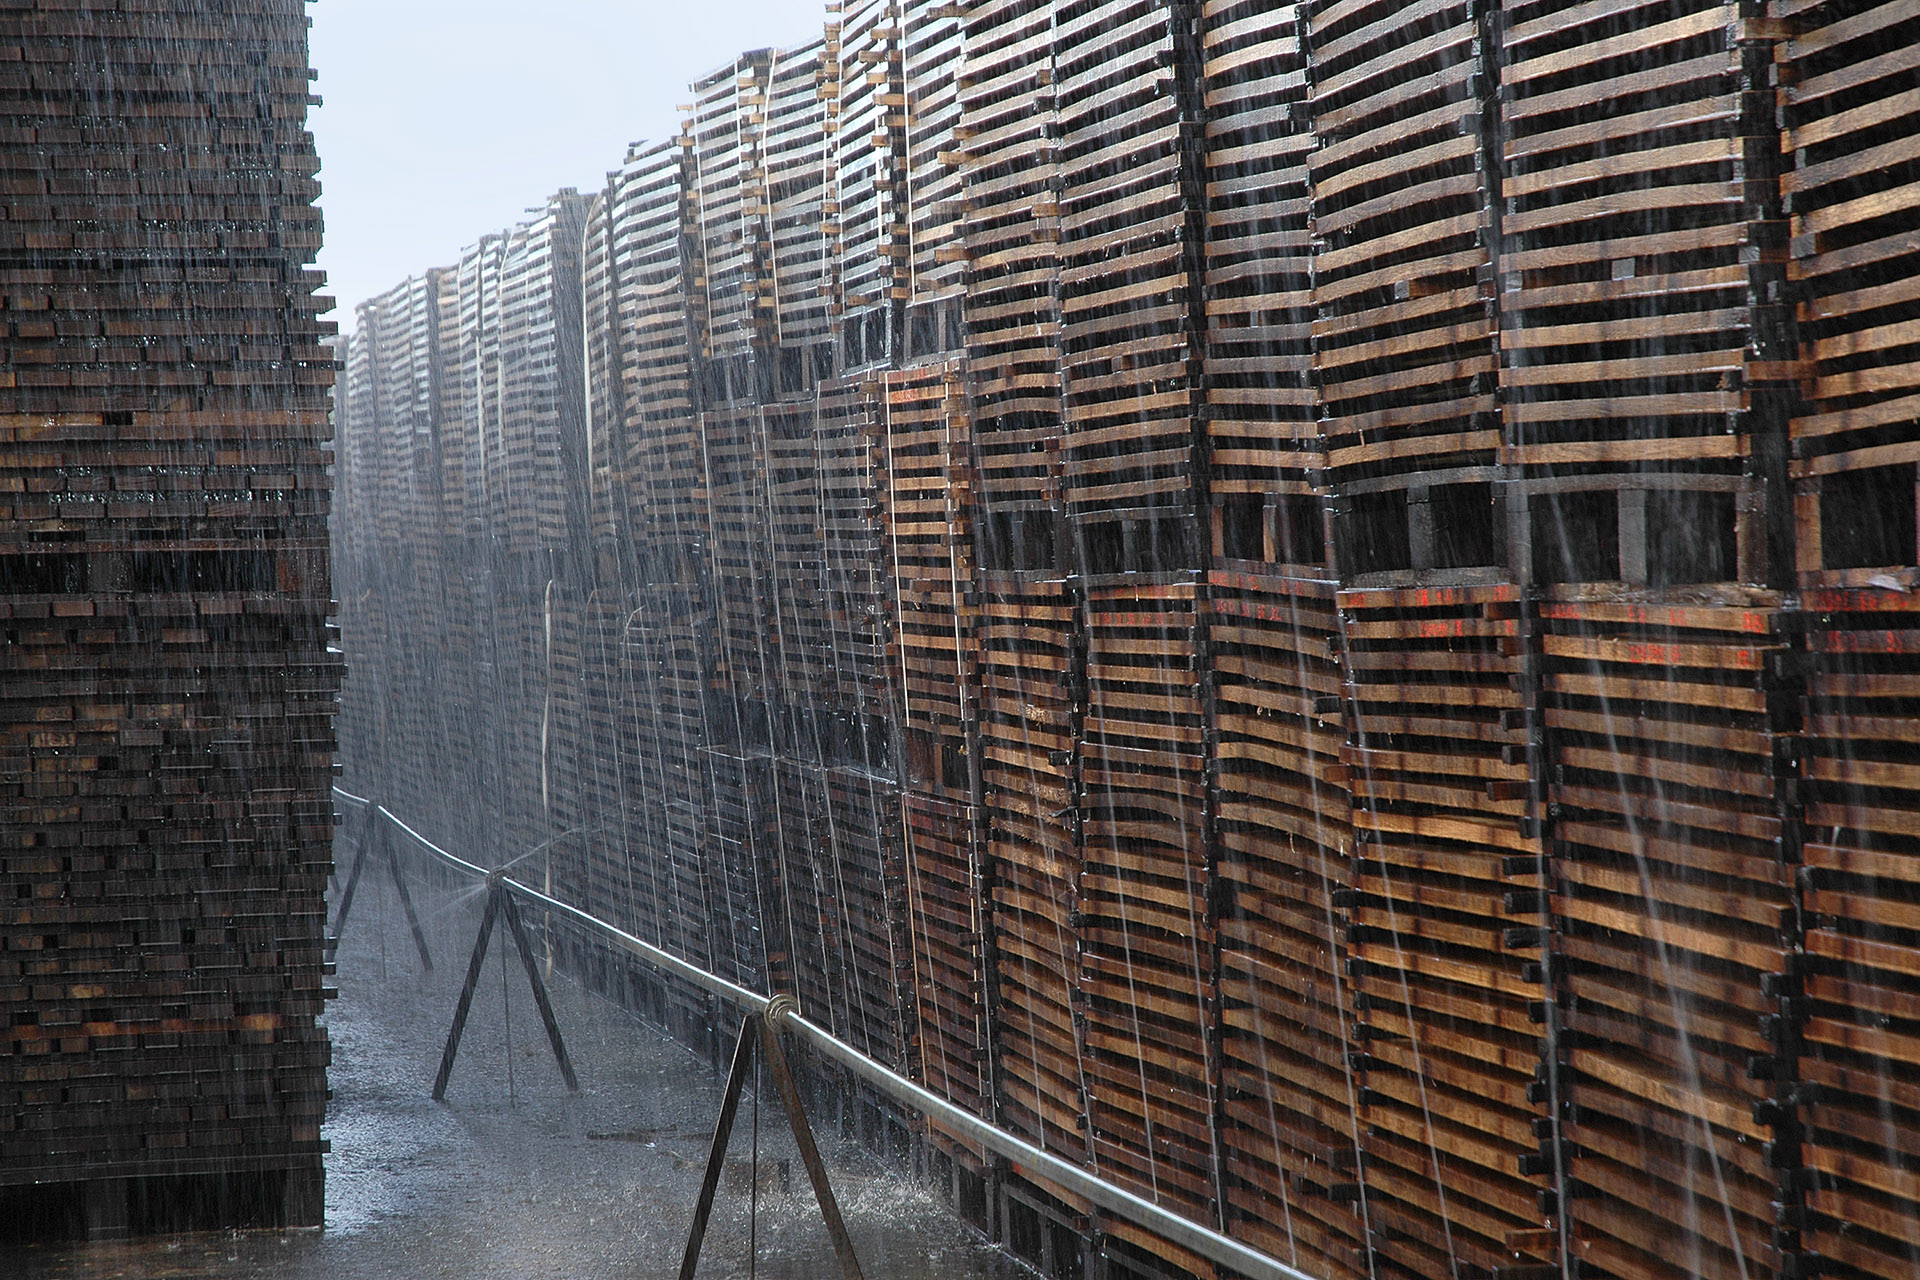 Pallets of oak panels being weathered by water